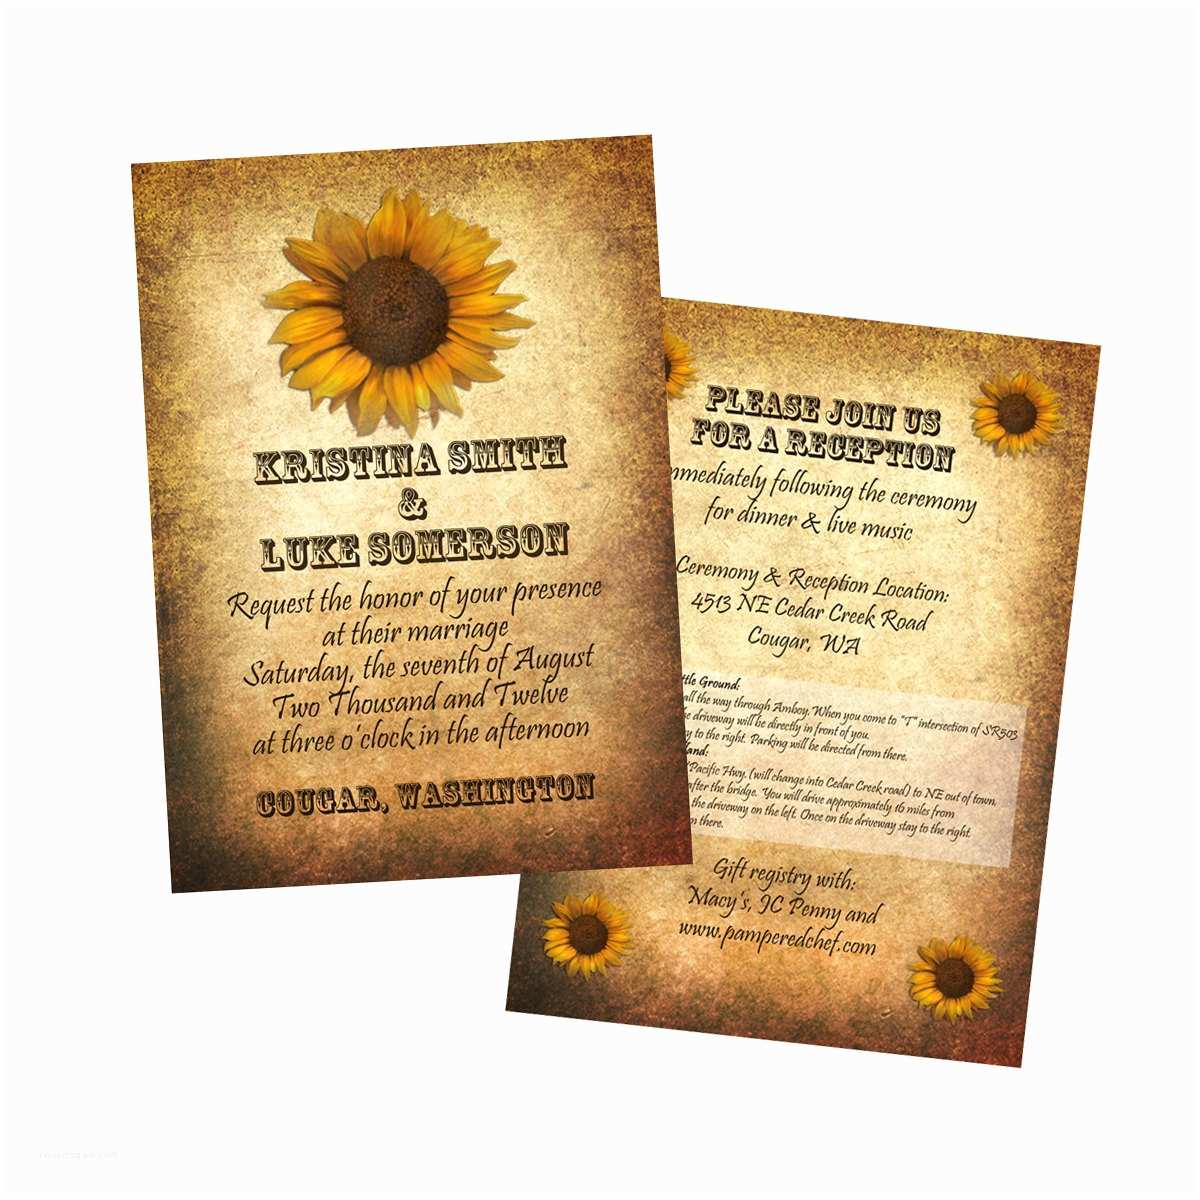 Sunflower Wedding Invitations Sunflower Wedding Invitation 25 Count – Epaperheart